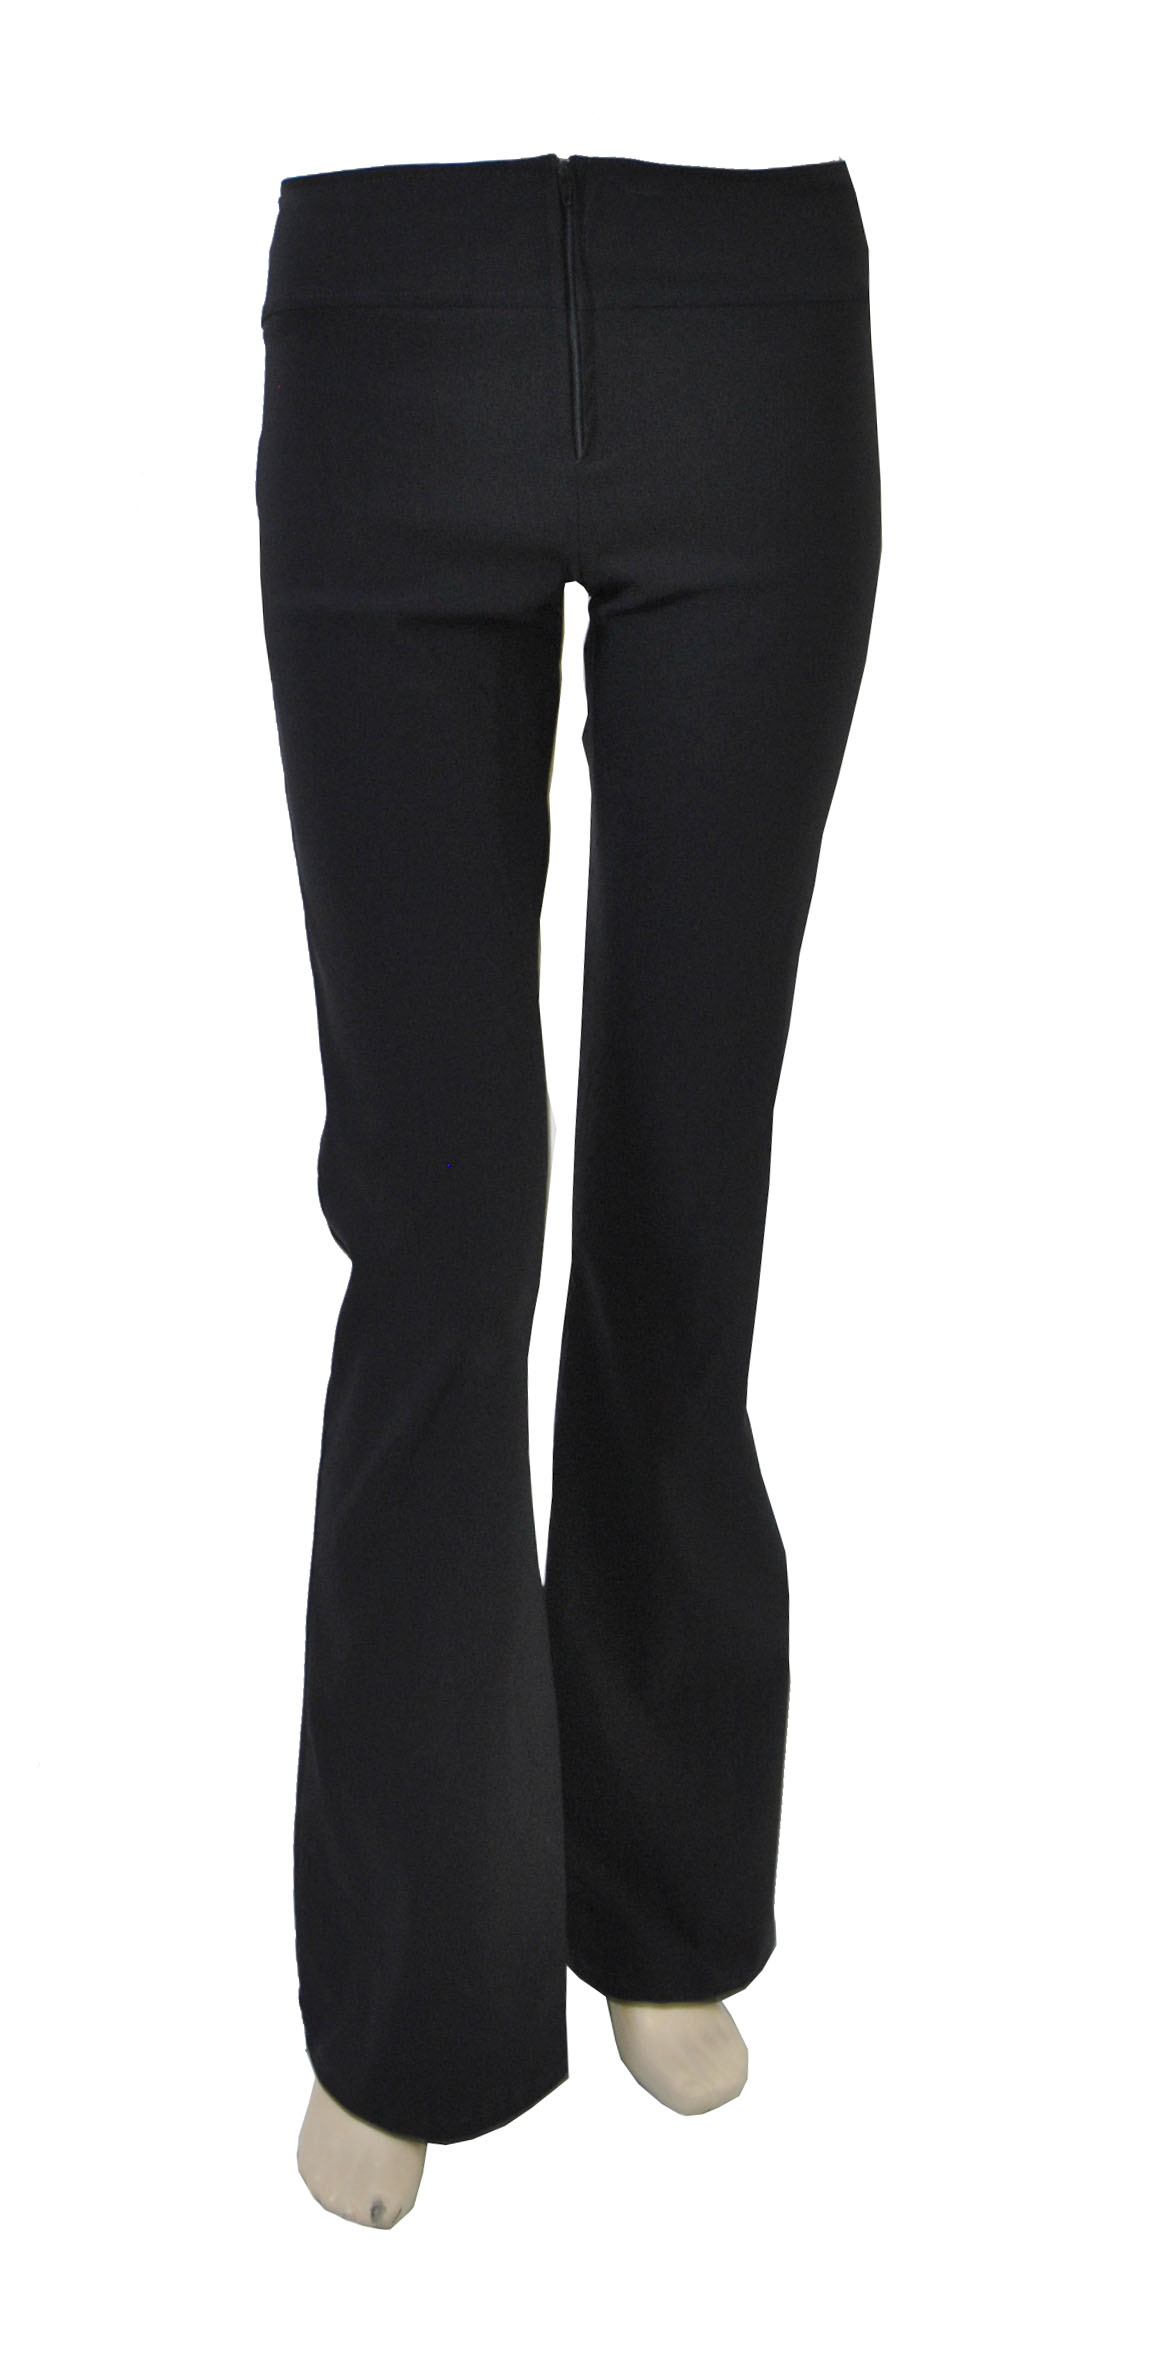 Shop Dillard's selection of women's bootcut pants.